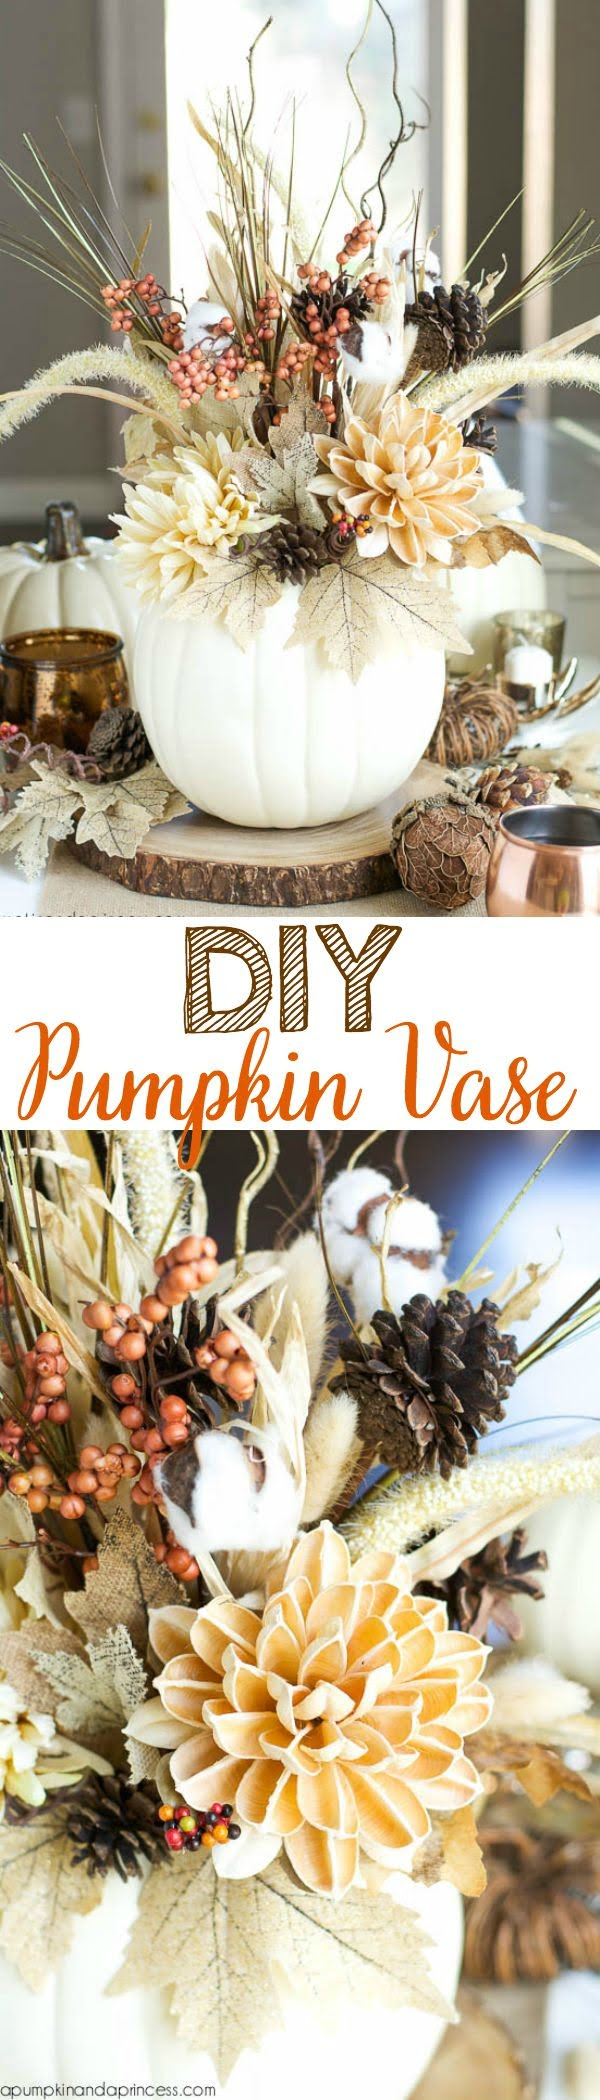 Easy tutorial for a DIY Pumpkin vase for Thanksgiving decorations